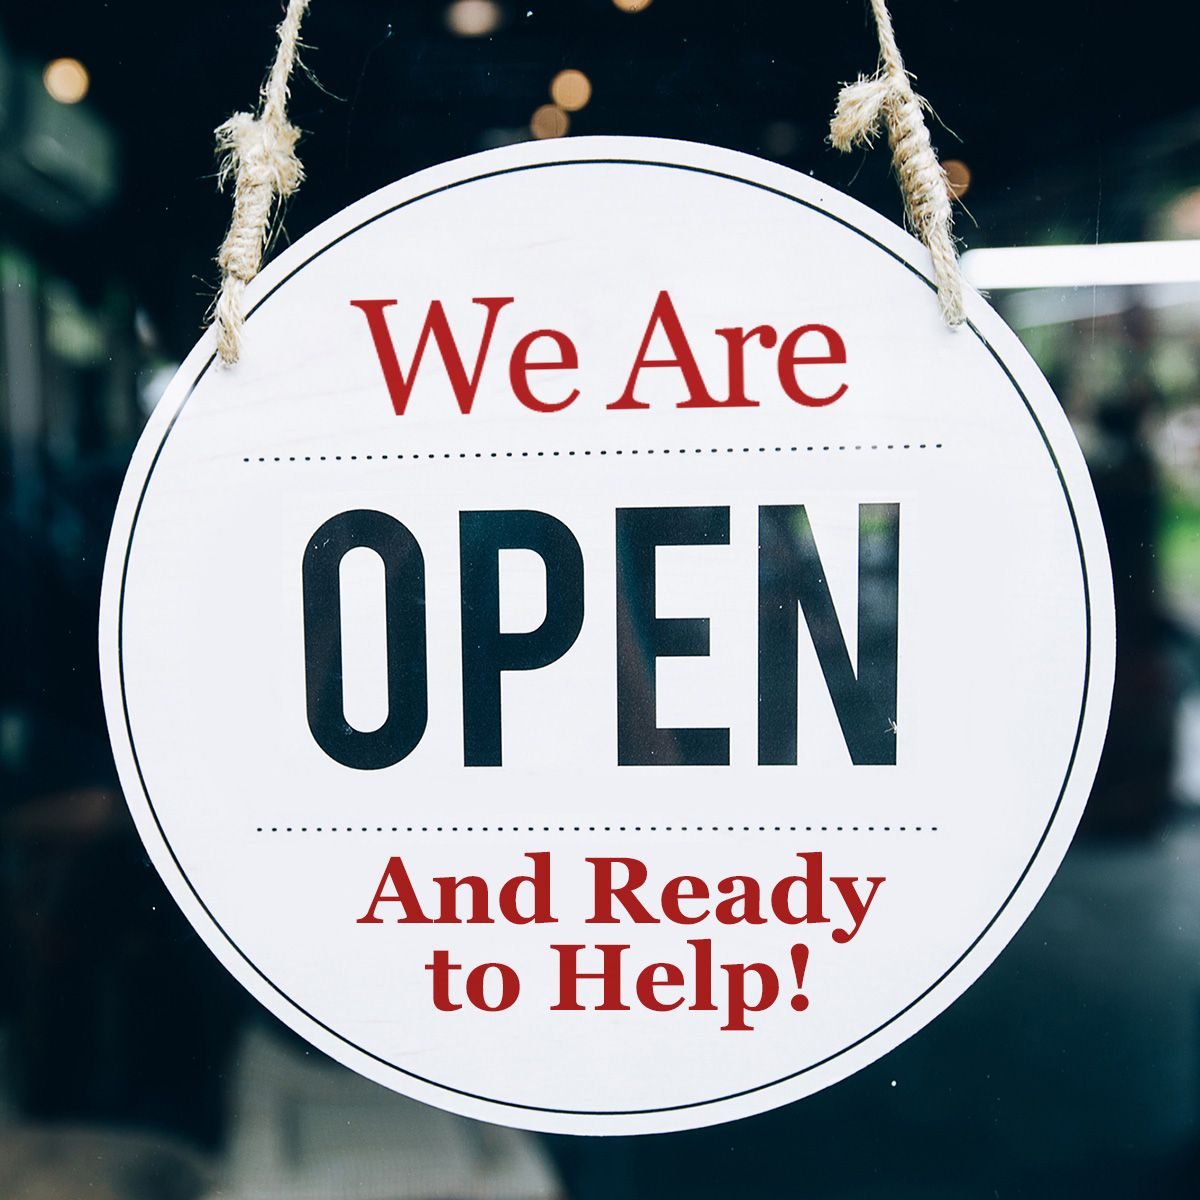 We Are Open And Ready to Help!